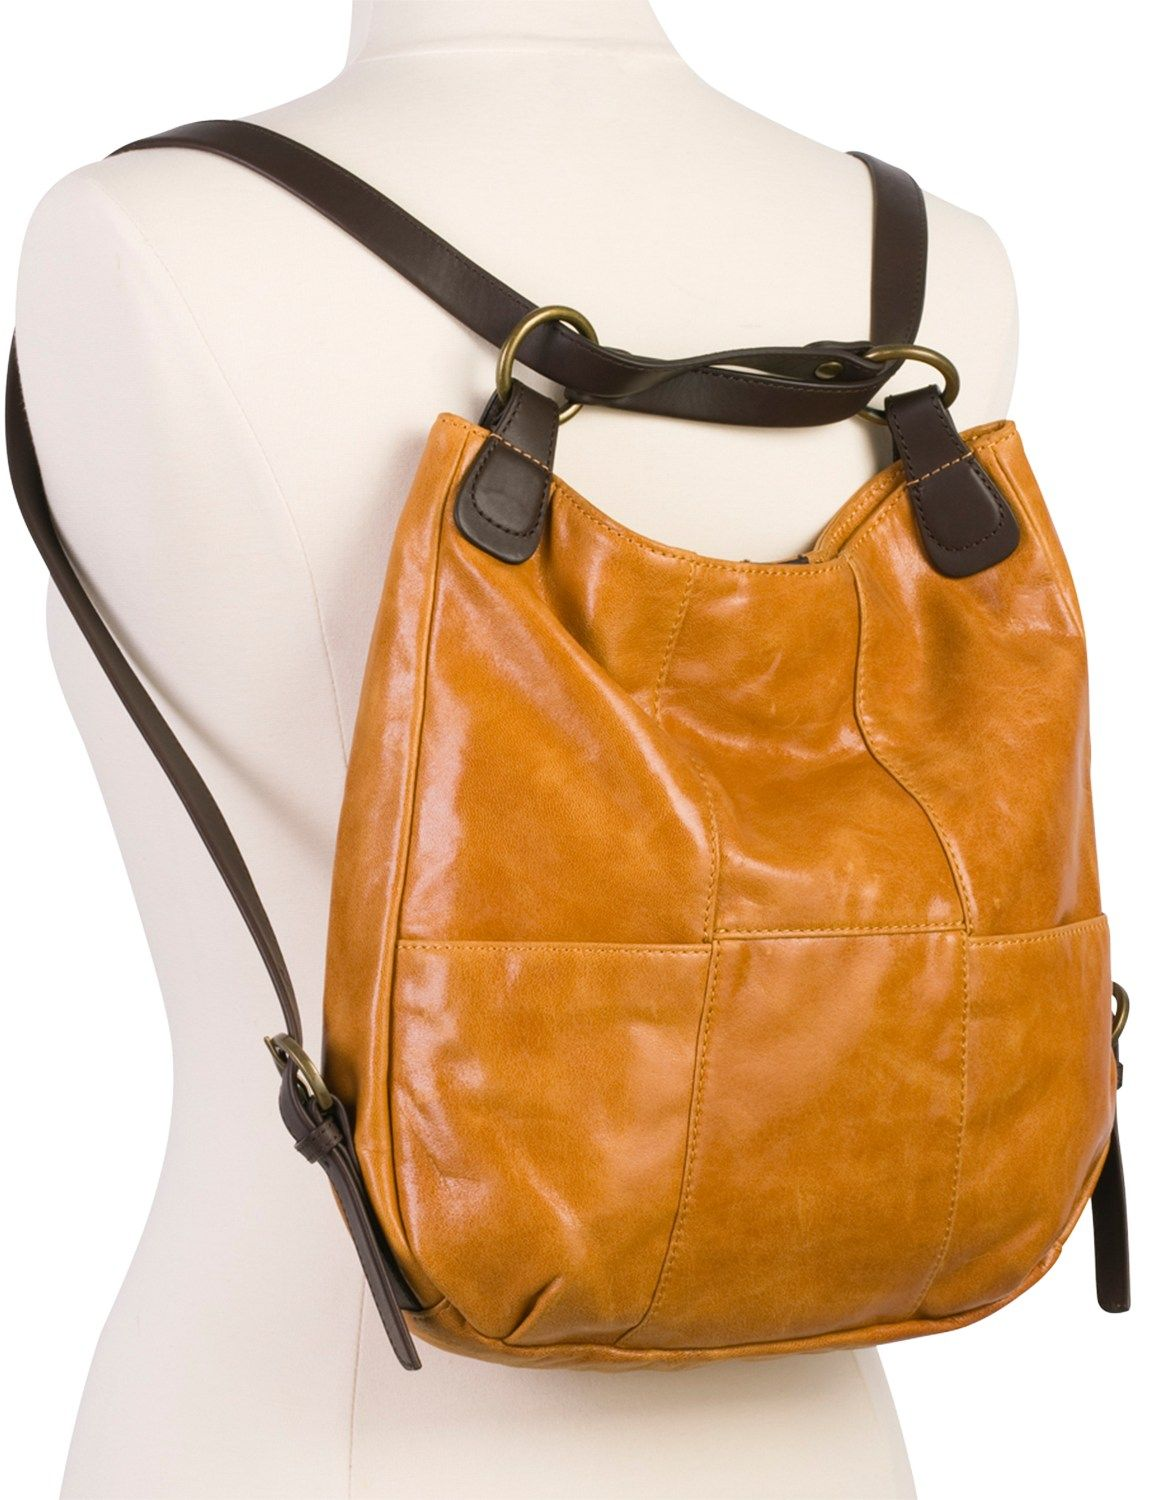 Ellington Charlie Convertible Backpack Purse - Women s - Free Shipping at  REI.com 4937577fb9b94